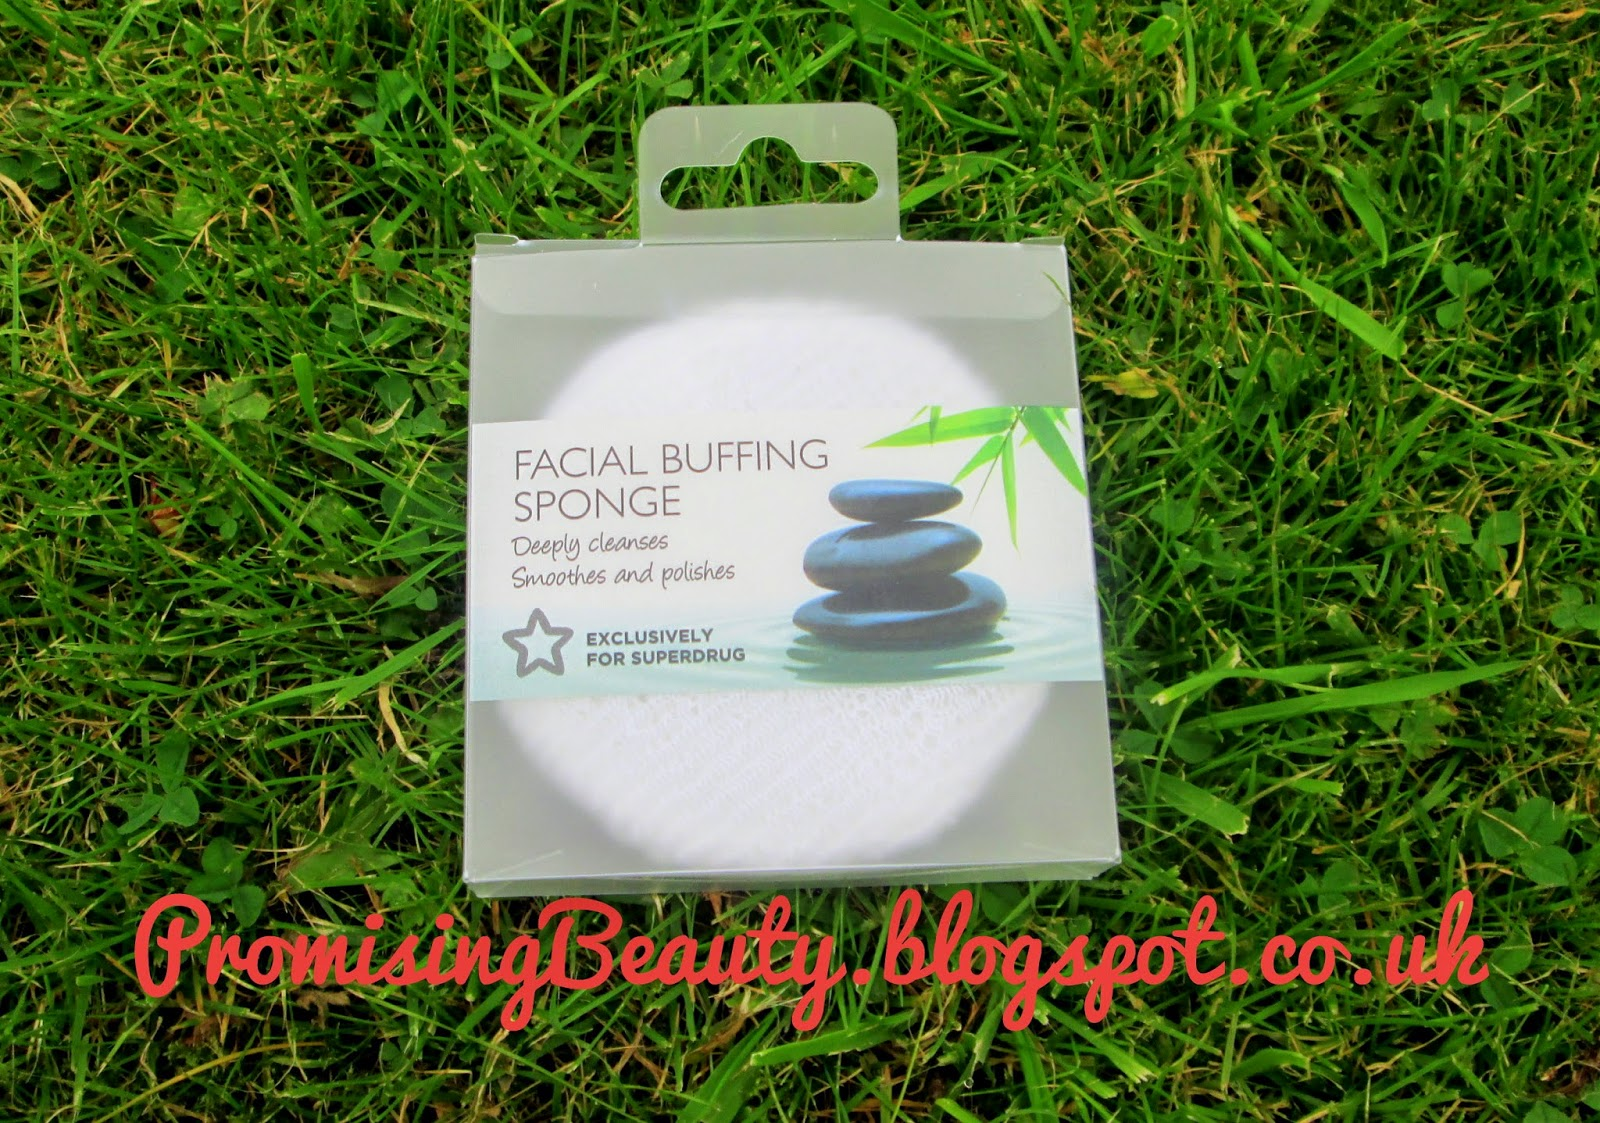 Facial sponge for cleansing, exfoliating, acne. Replace a face scrub